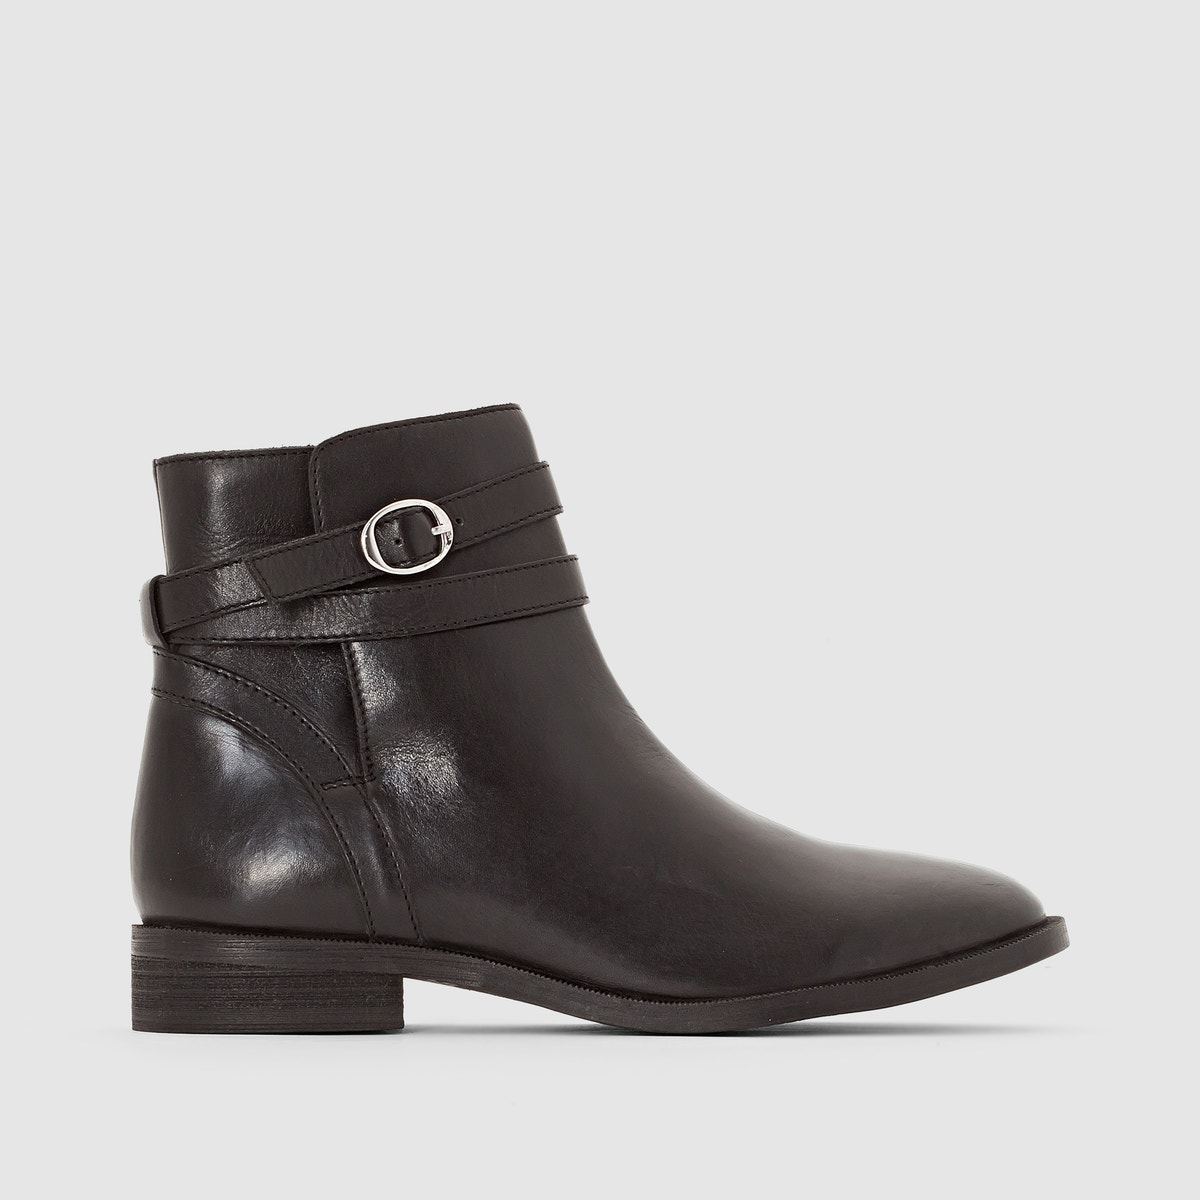 La Ankle ROToute Collections Damenschuhe Leder Ankle La Stiefel With Buckled Strap a8a533